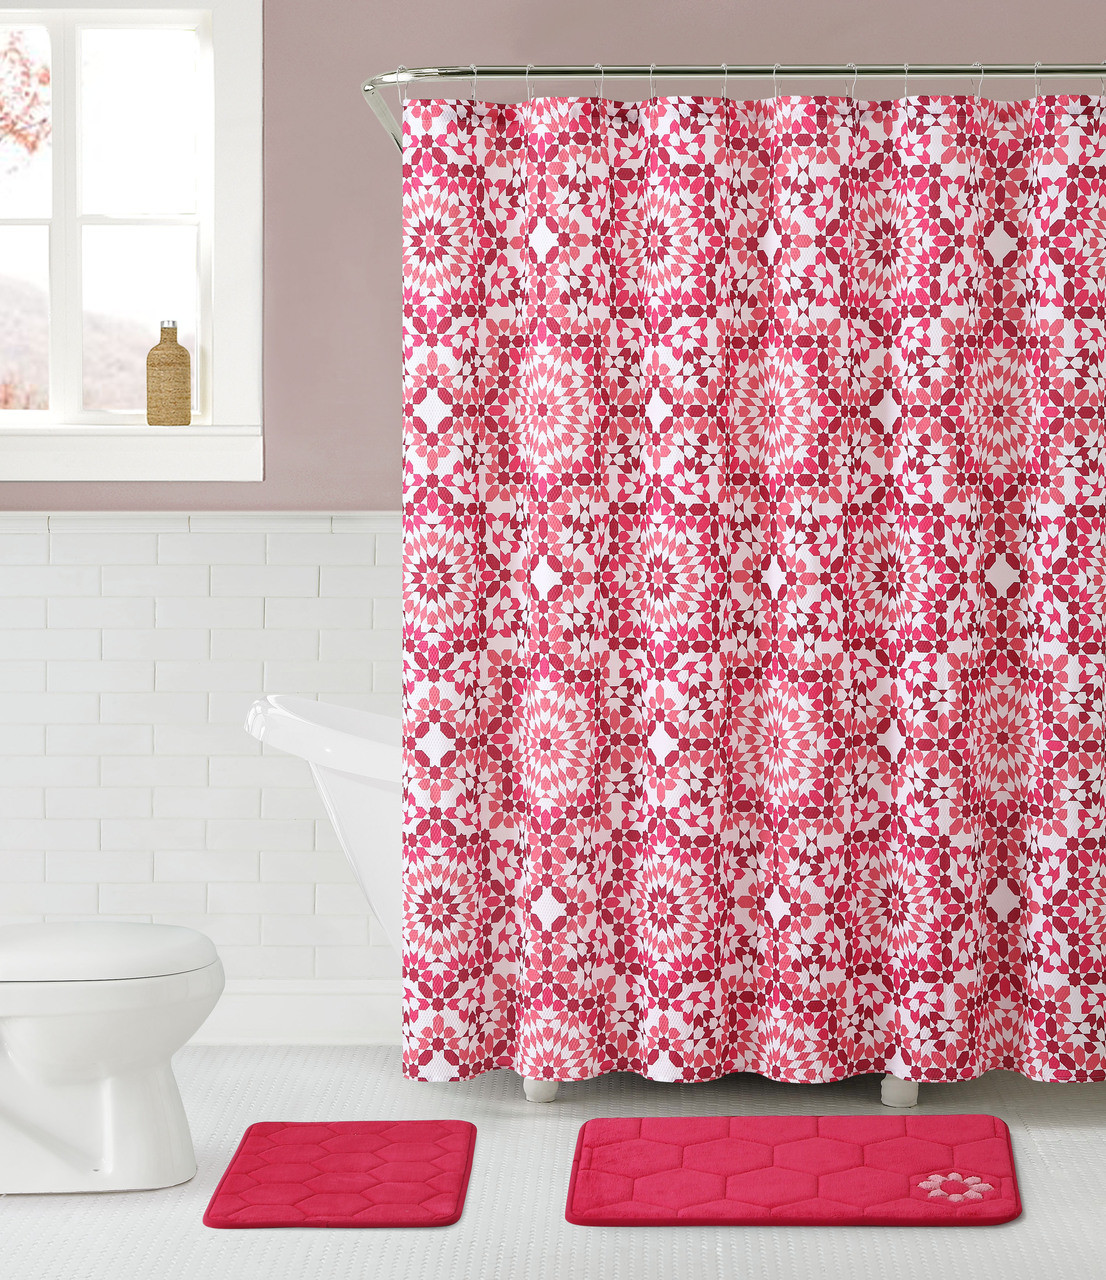 Pink Bathroom Set 2 Memory Foam Floor Mats Fabric Shower Curtain